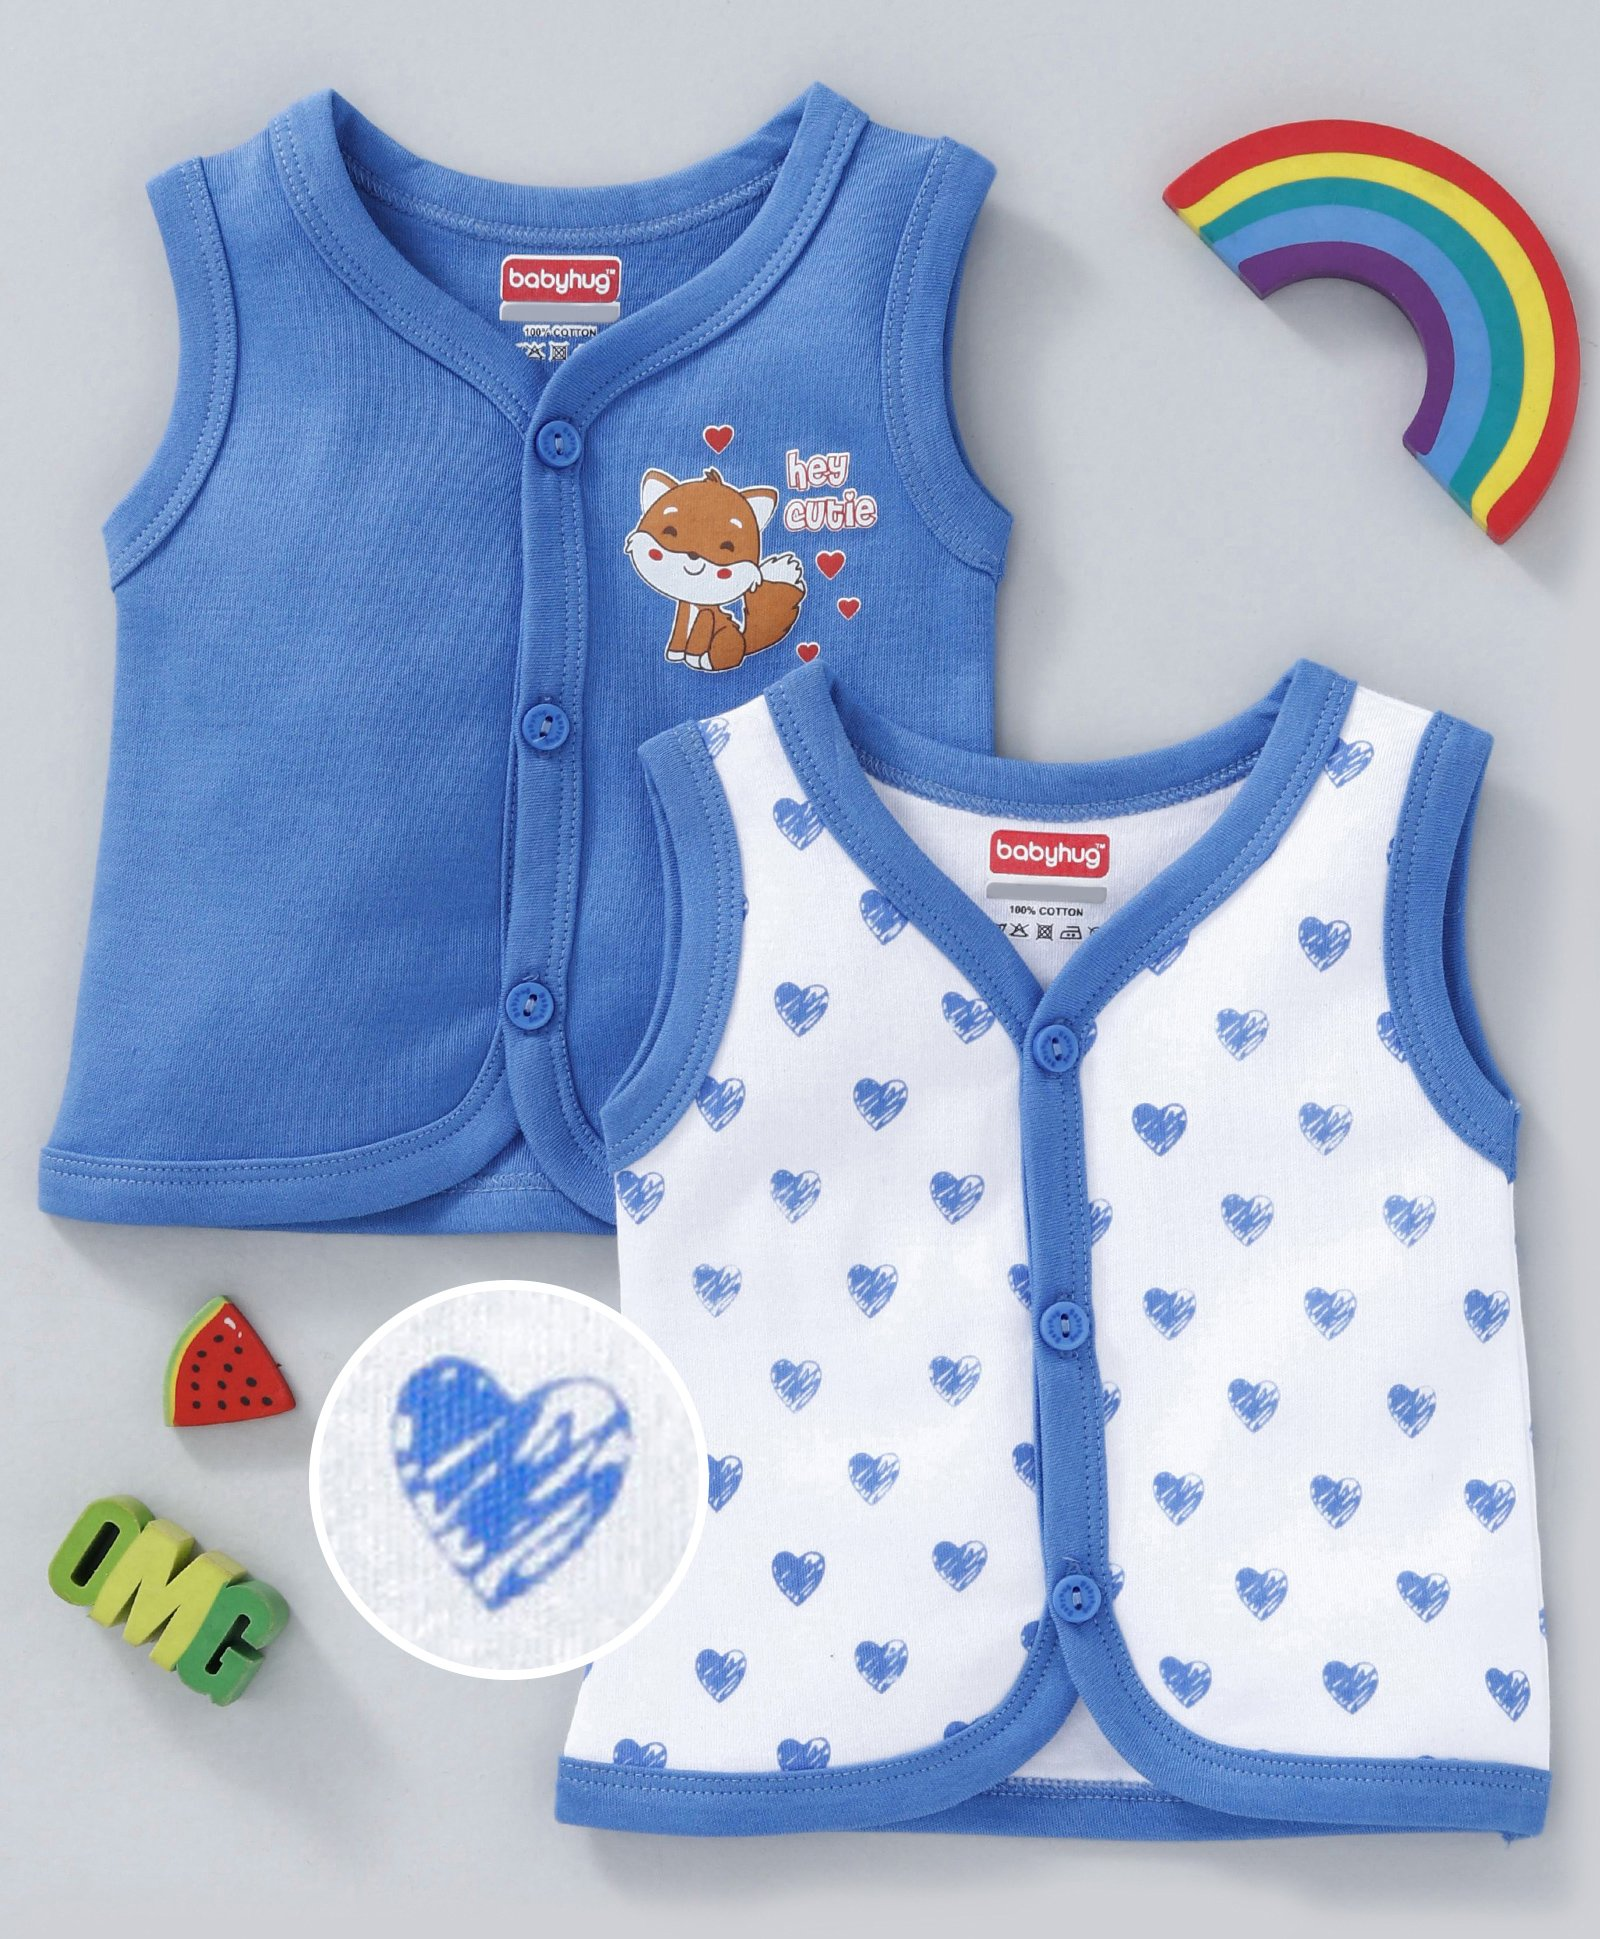 98a1b0407de3bb Babyhug Sleeveless Cotton Vests Hearts Print Pack of 2 - Blue White